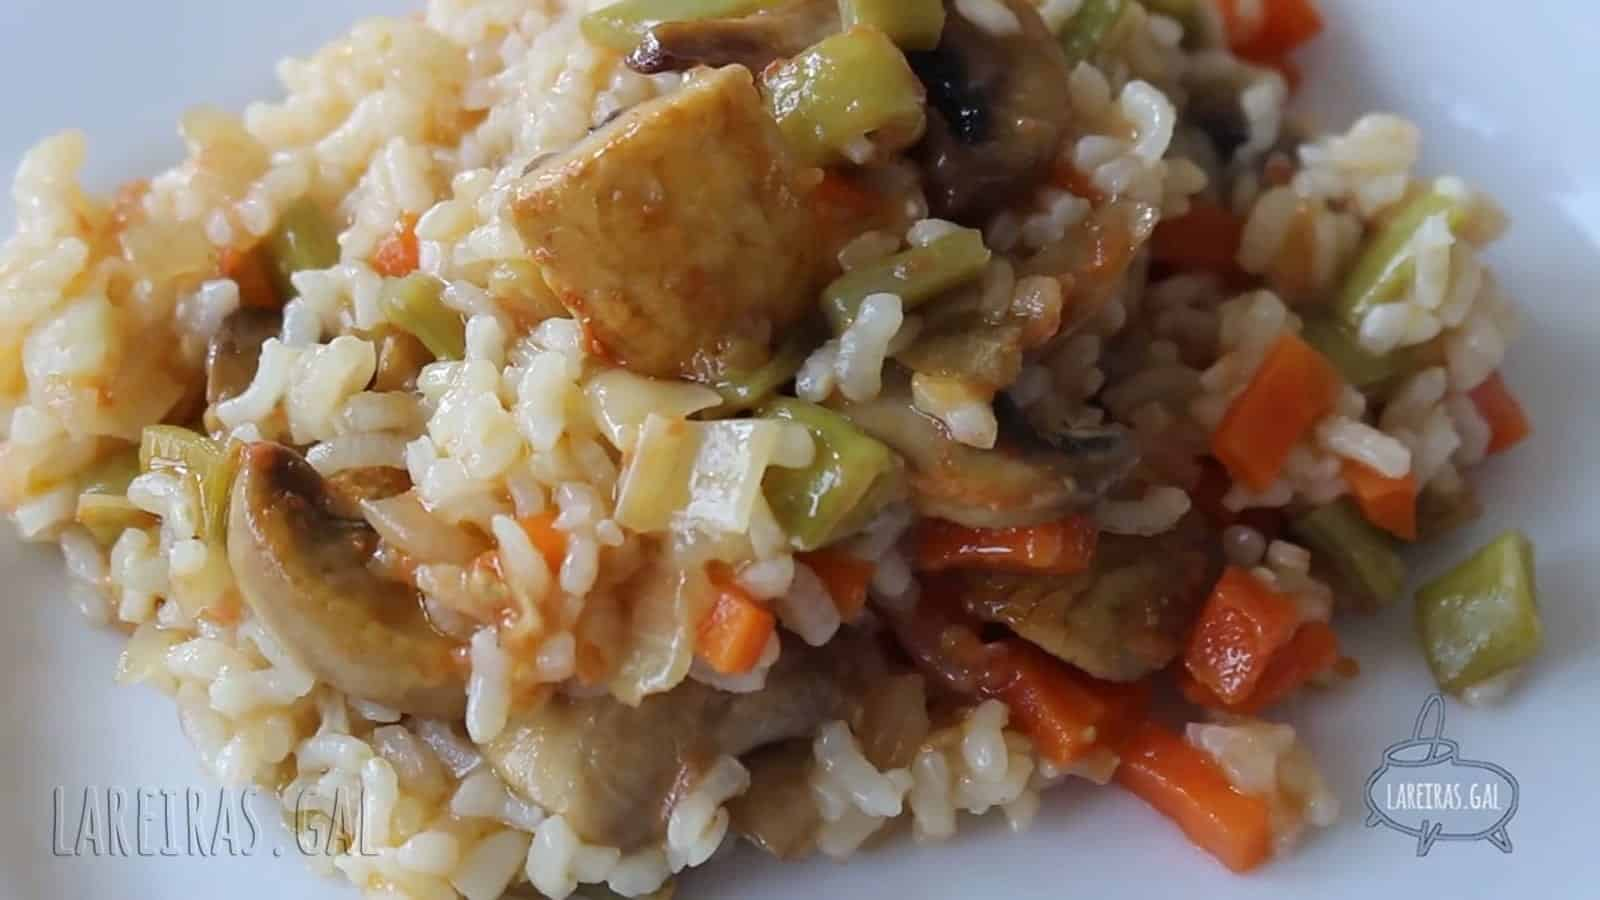 Arroz con verduras ao curry